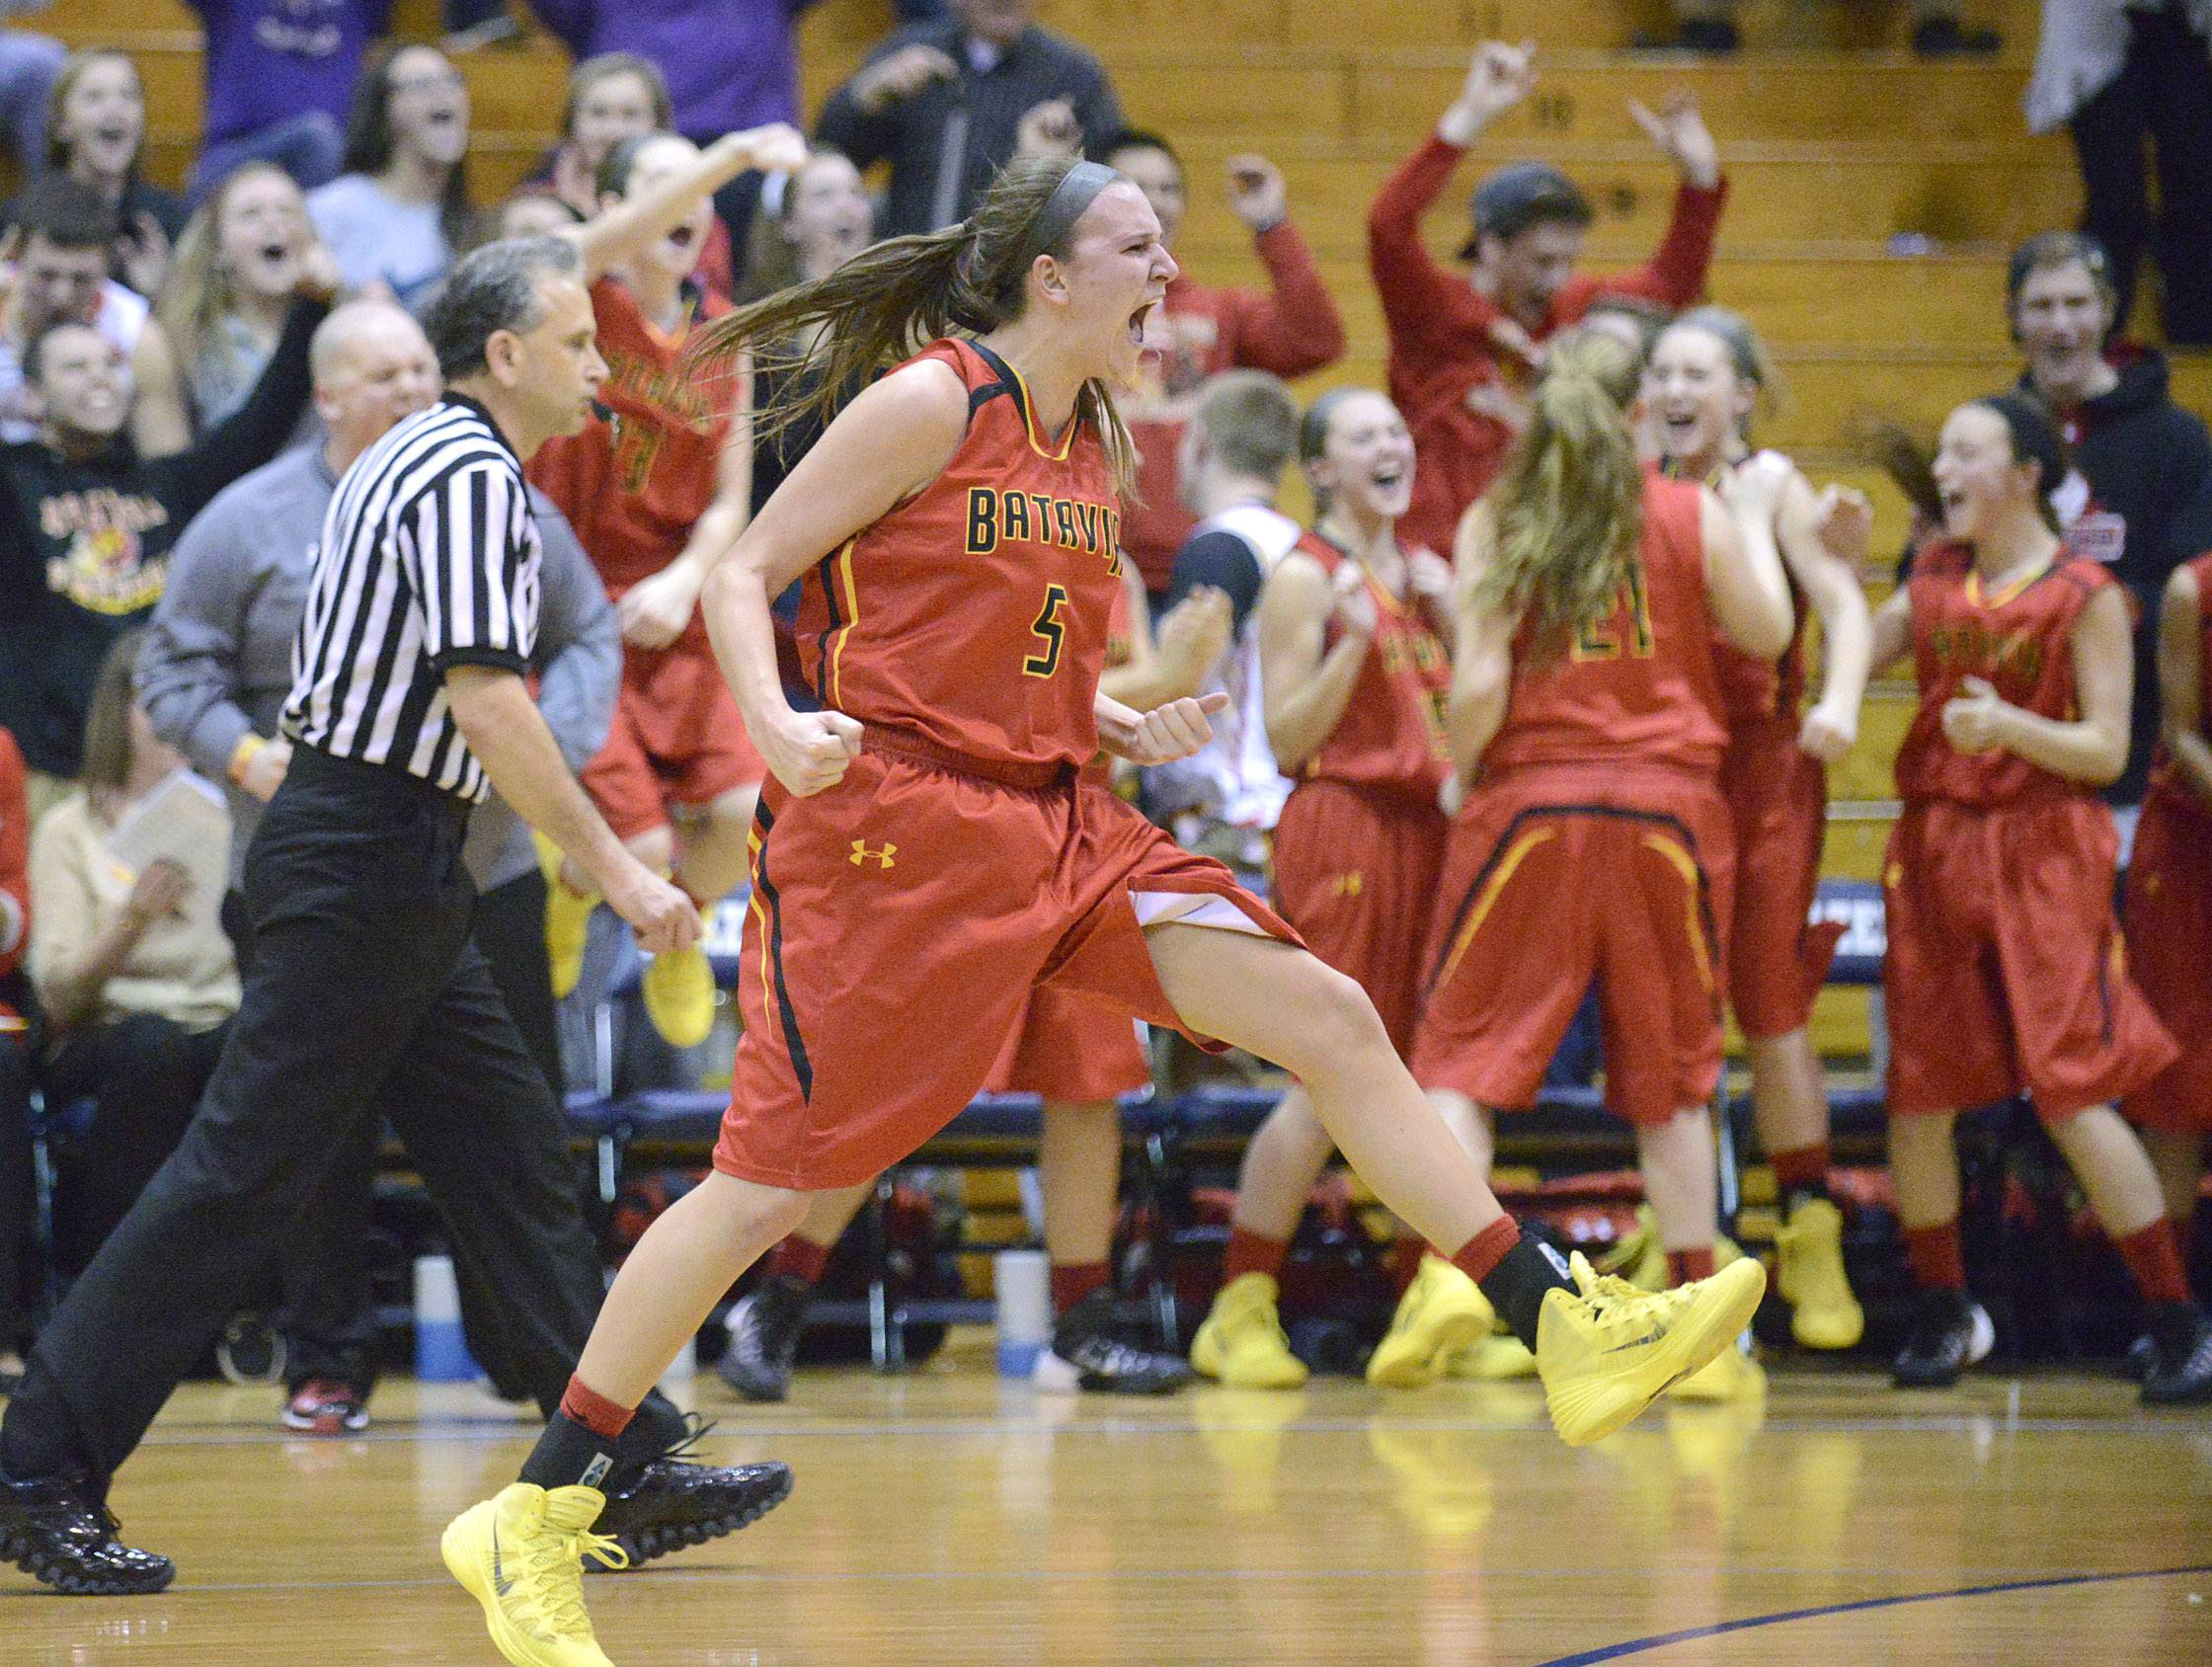 Batavia's Liza Fruendt reacts as teammate Hannah Frazier is fouled giving the Bulldogs the advantage in the final seconds of the fourth quarter .